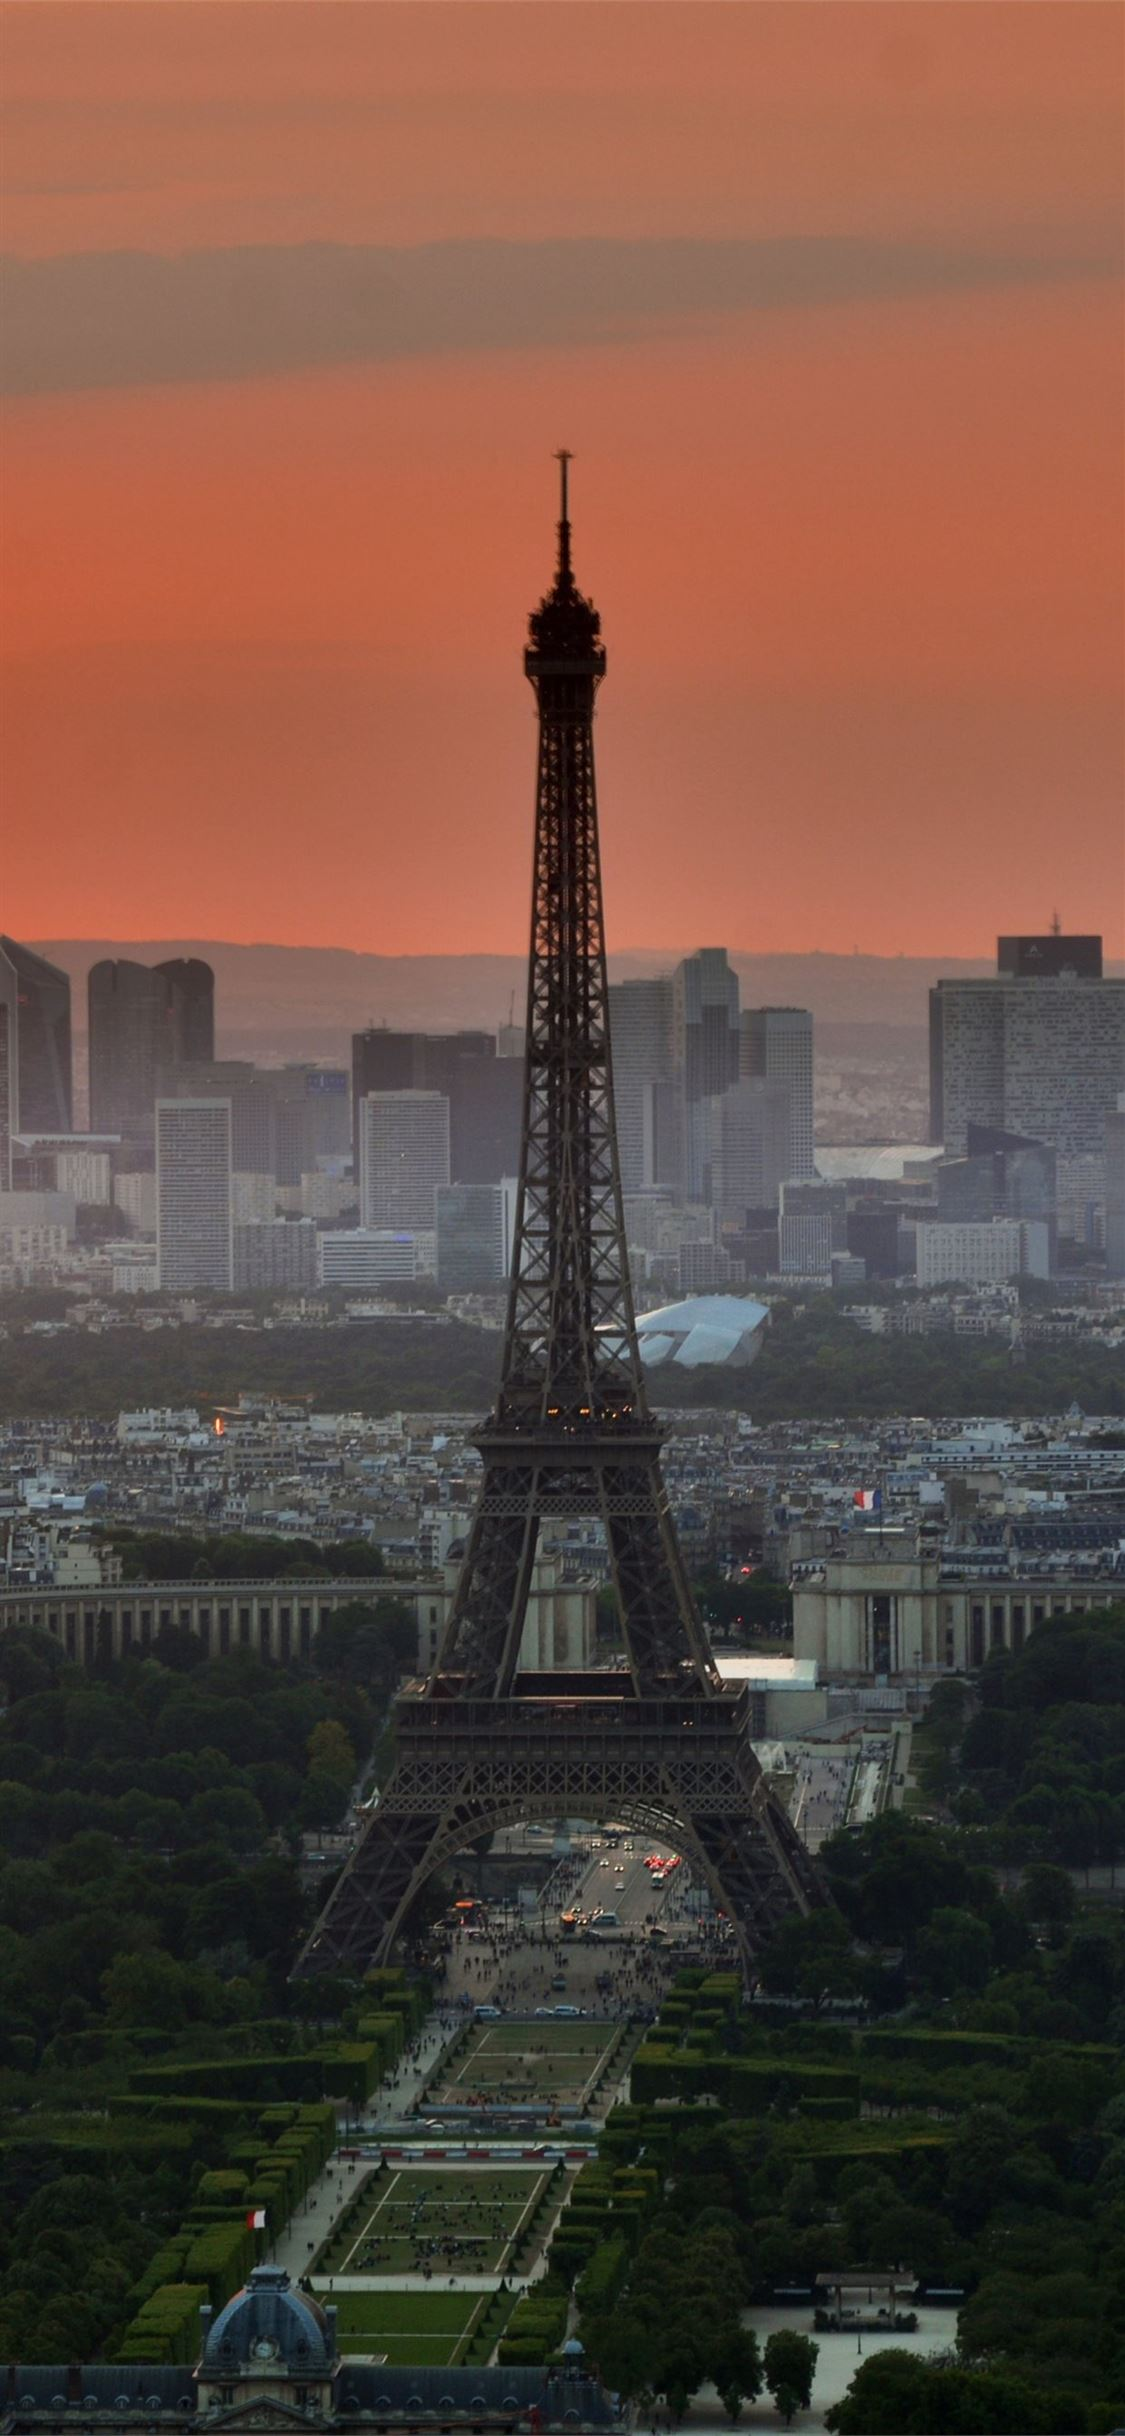 Eiffel Tower In Paris 4k Samsung Galaxy Note 9 8 S Iphone X Wallpapers Free Download